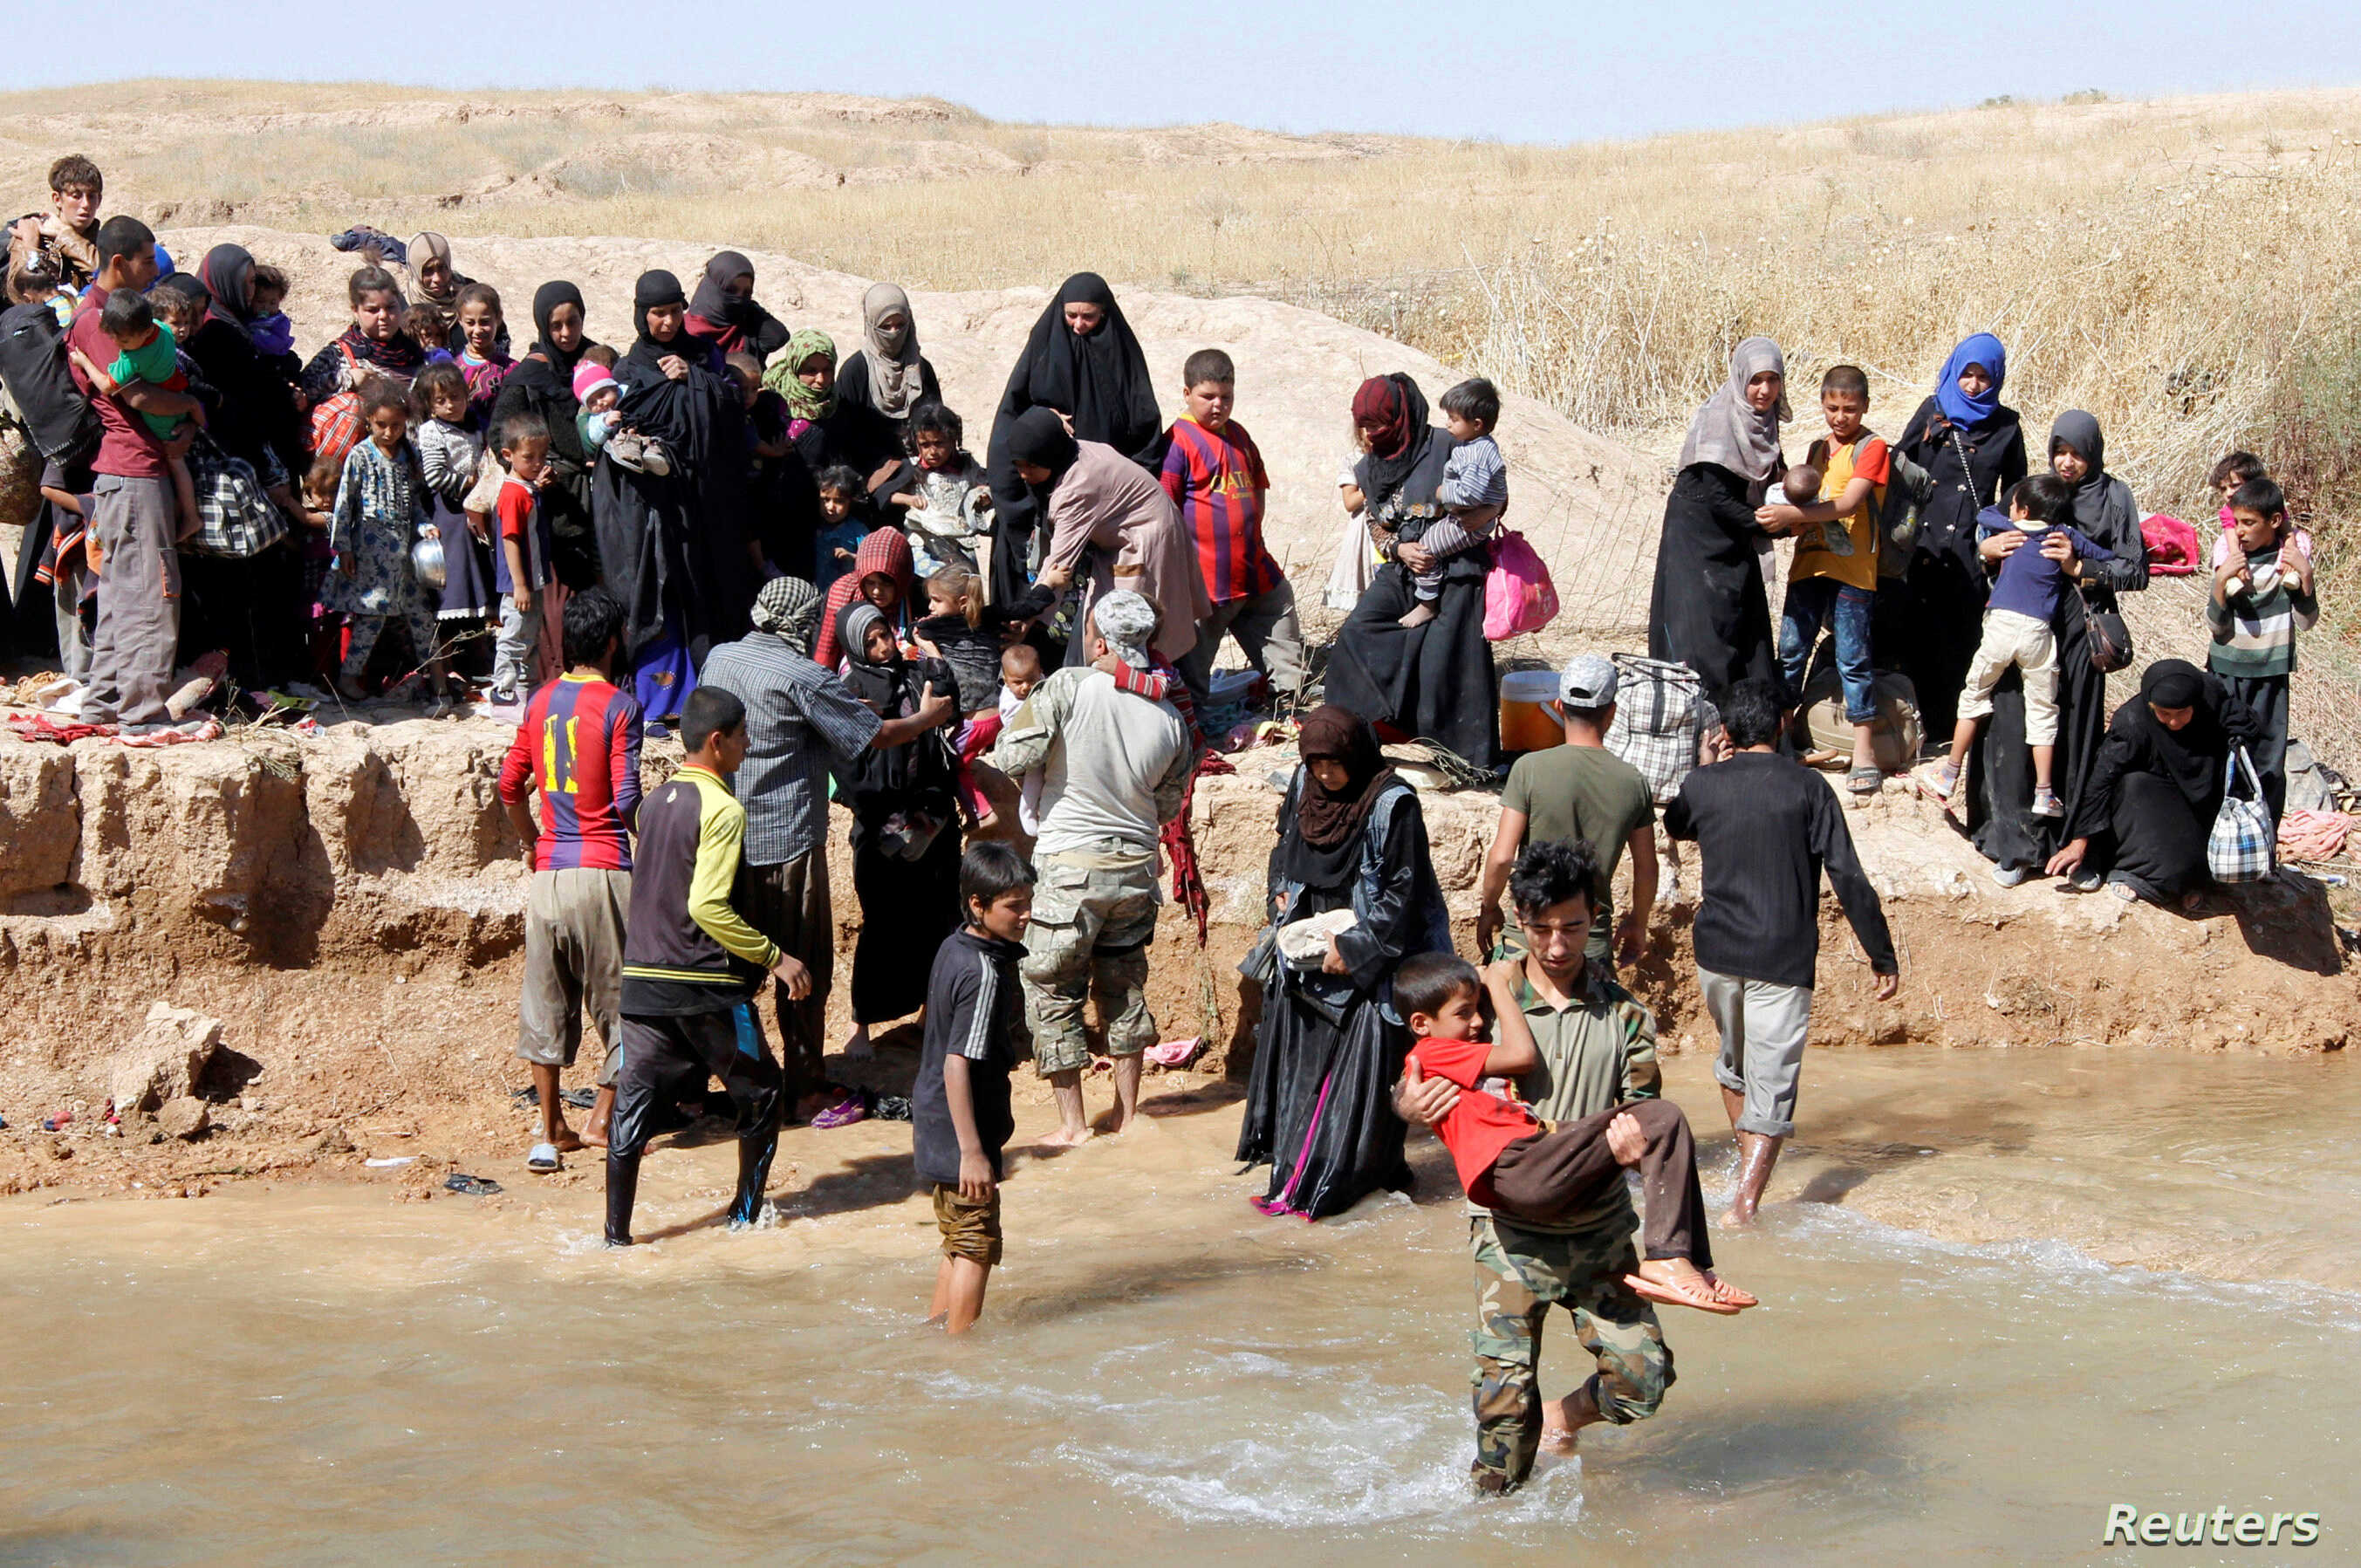 Displaced people, who fled from their homes in Hawija, cross the water to reach the other bank to be transported to camps for displaced people, in southwest of Kirkuk, Iraq, Oct. 4, 2017.